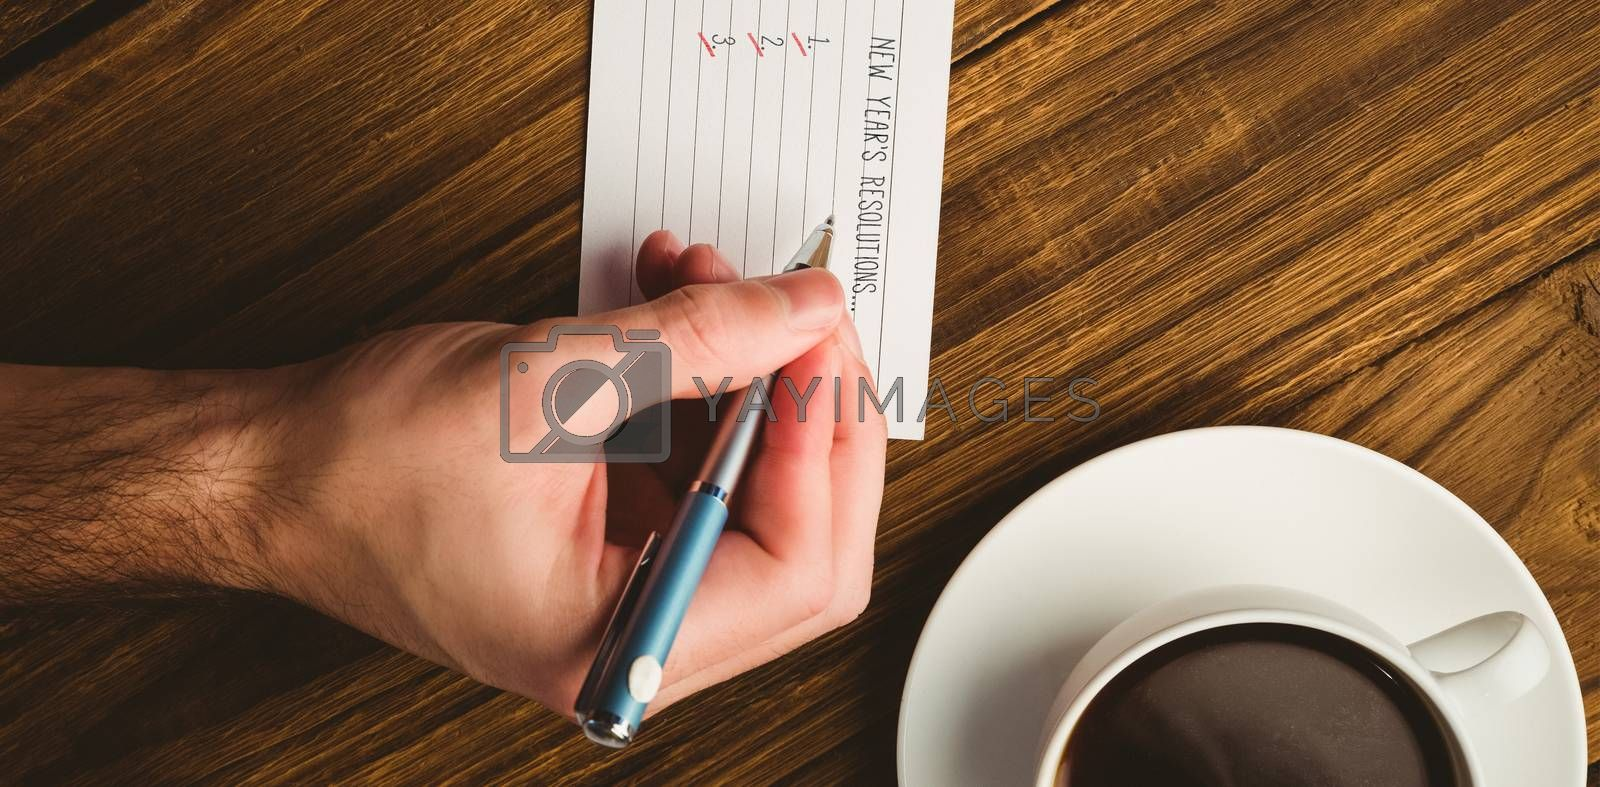 New years resolution list against cropped hand writing on paper at desk with coffee cup